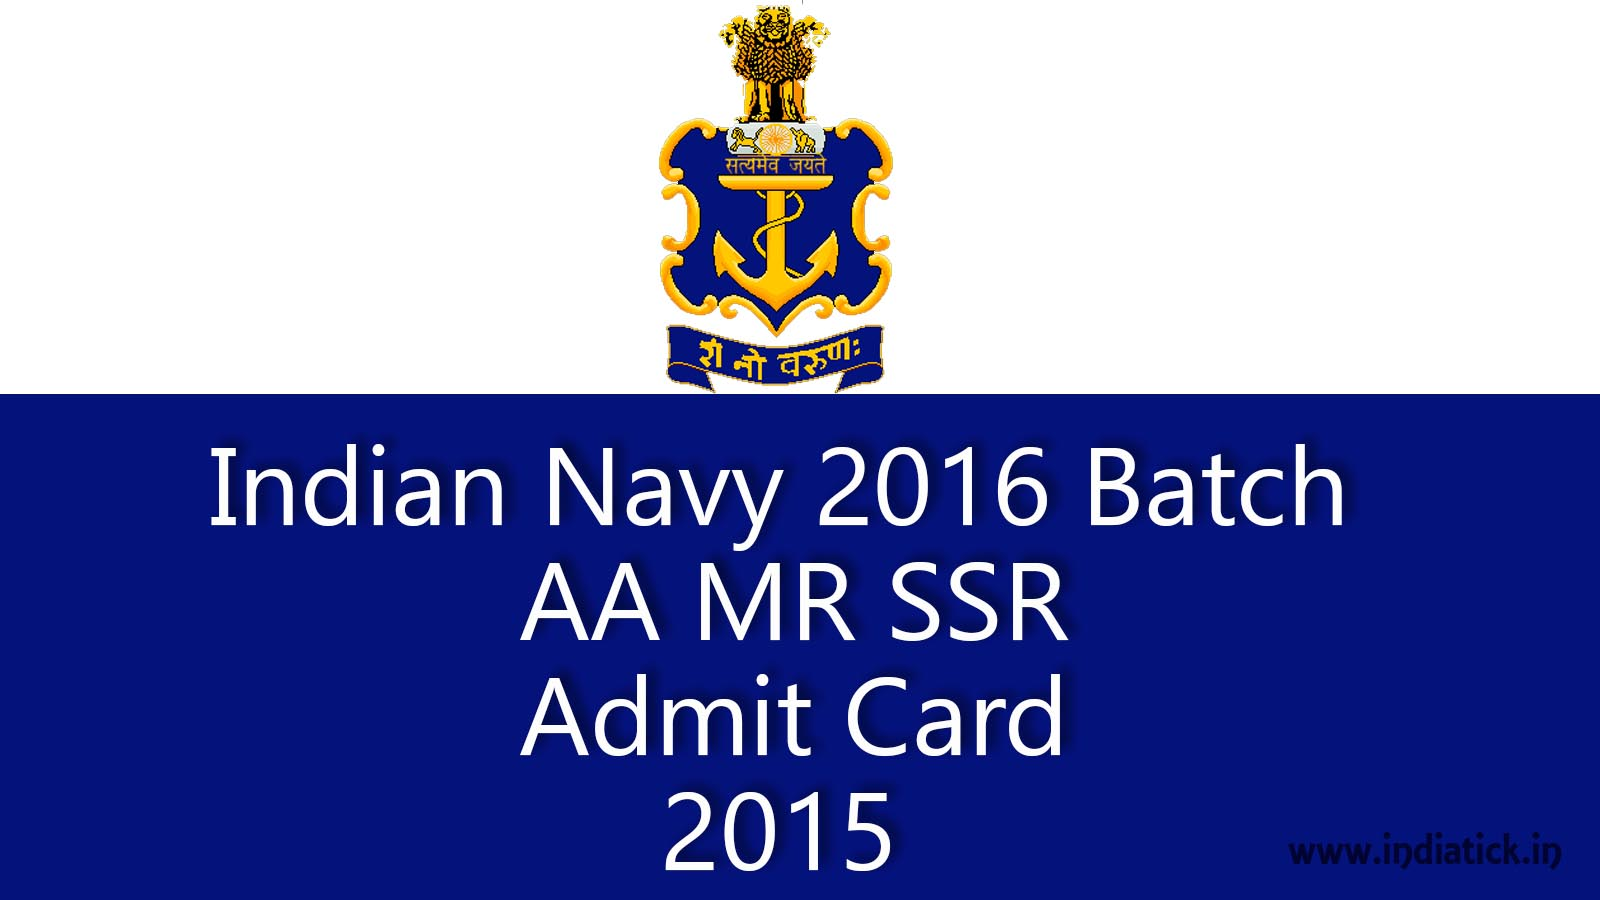 Indian Navy AA MR SSR Admit Card 2015 Call Letter for Written Exam Navy Admit Card 2015 Download at www.nausena-bharti.nic.in